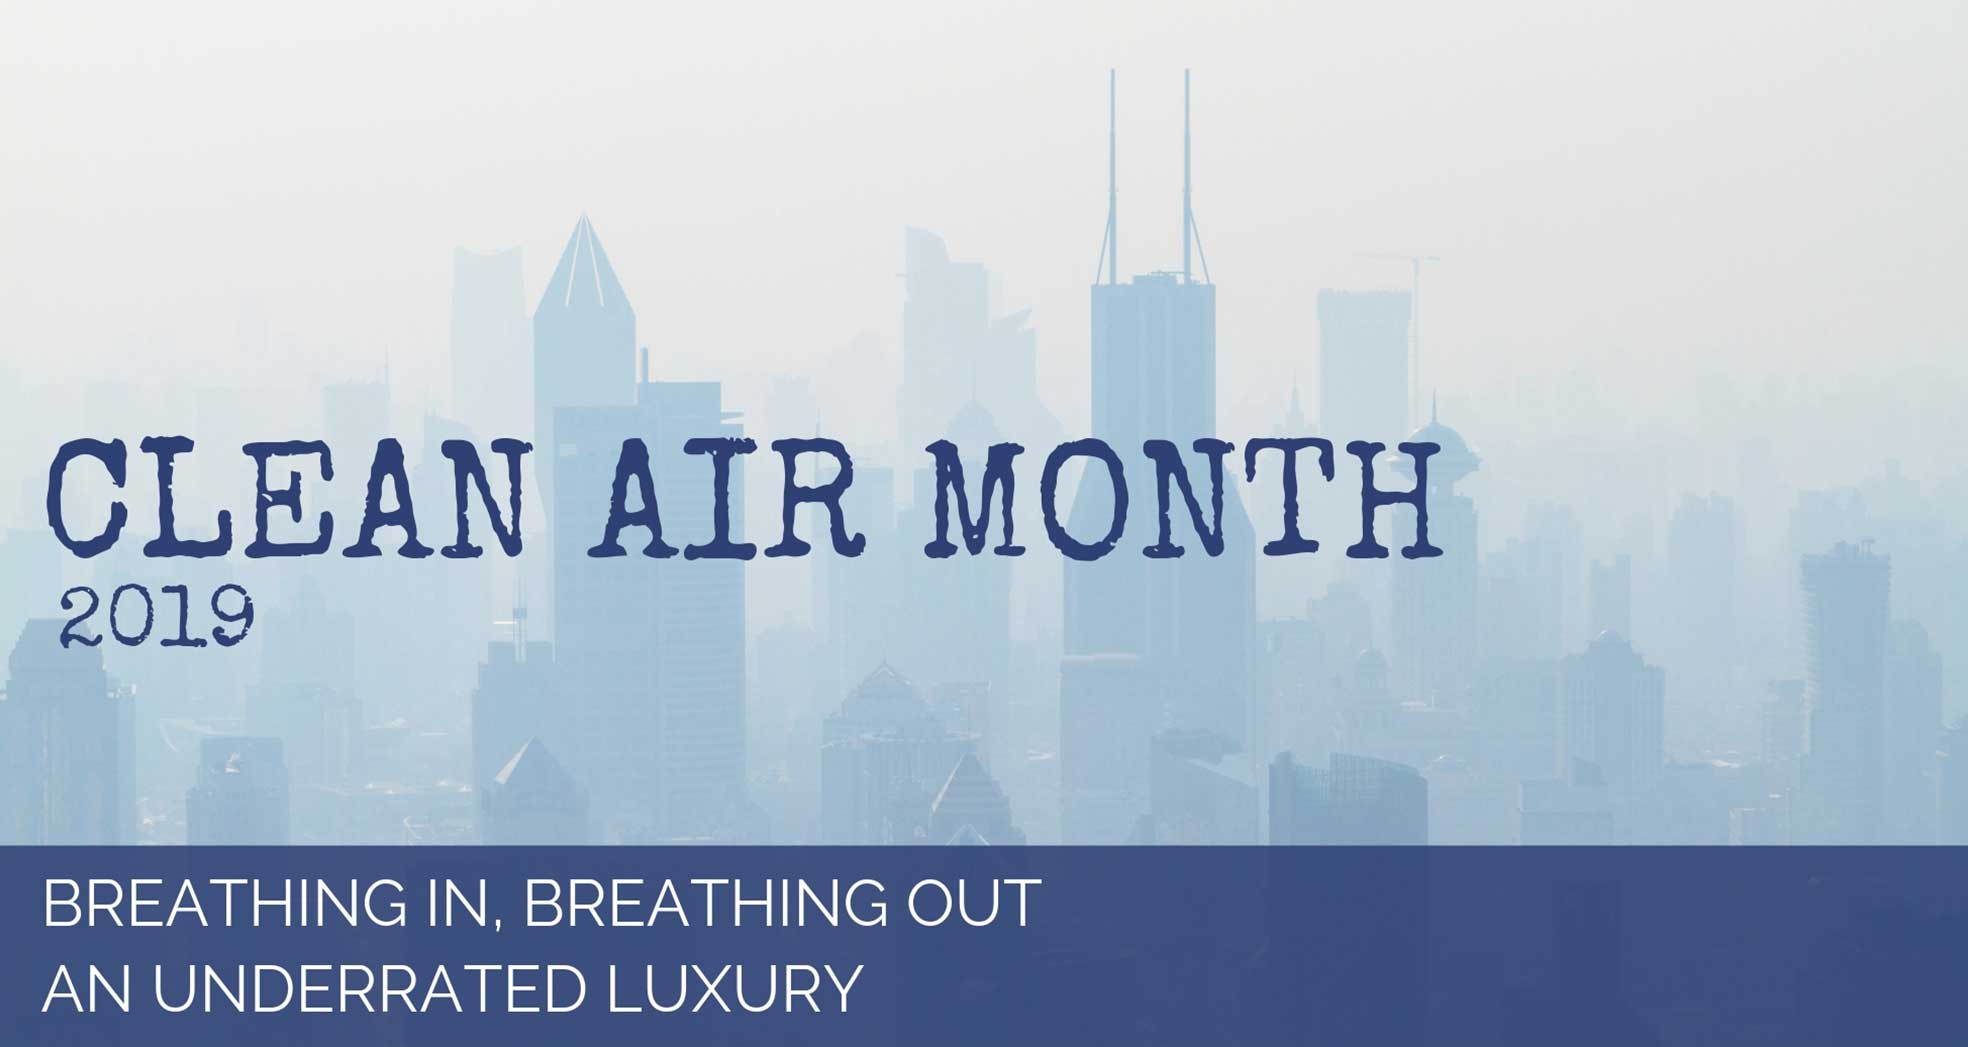 Clean Air Month 2019